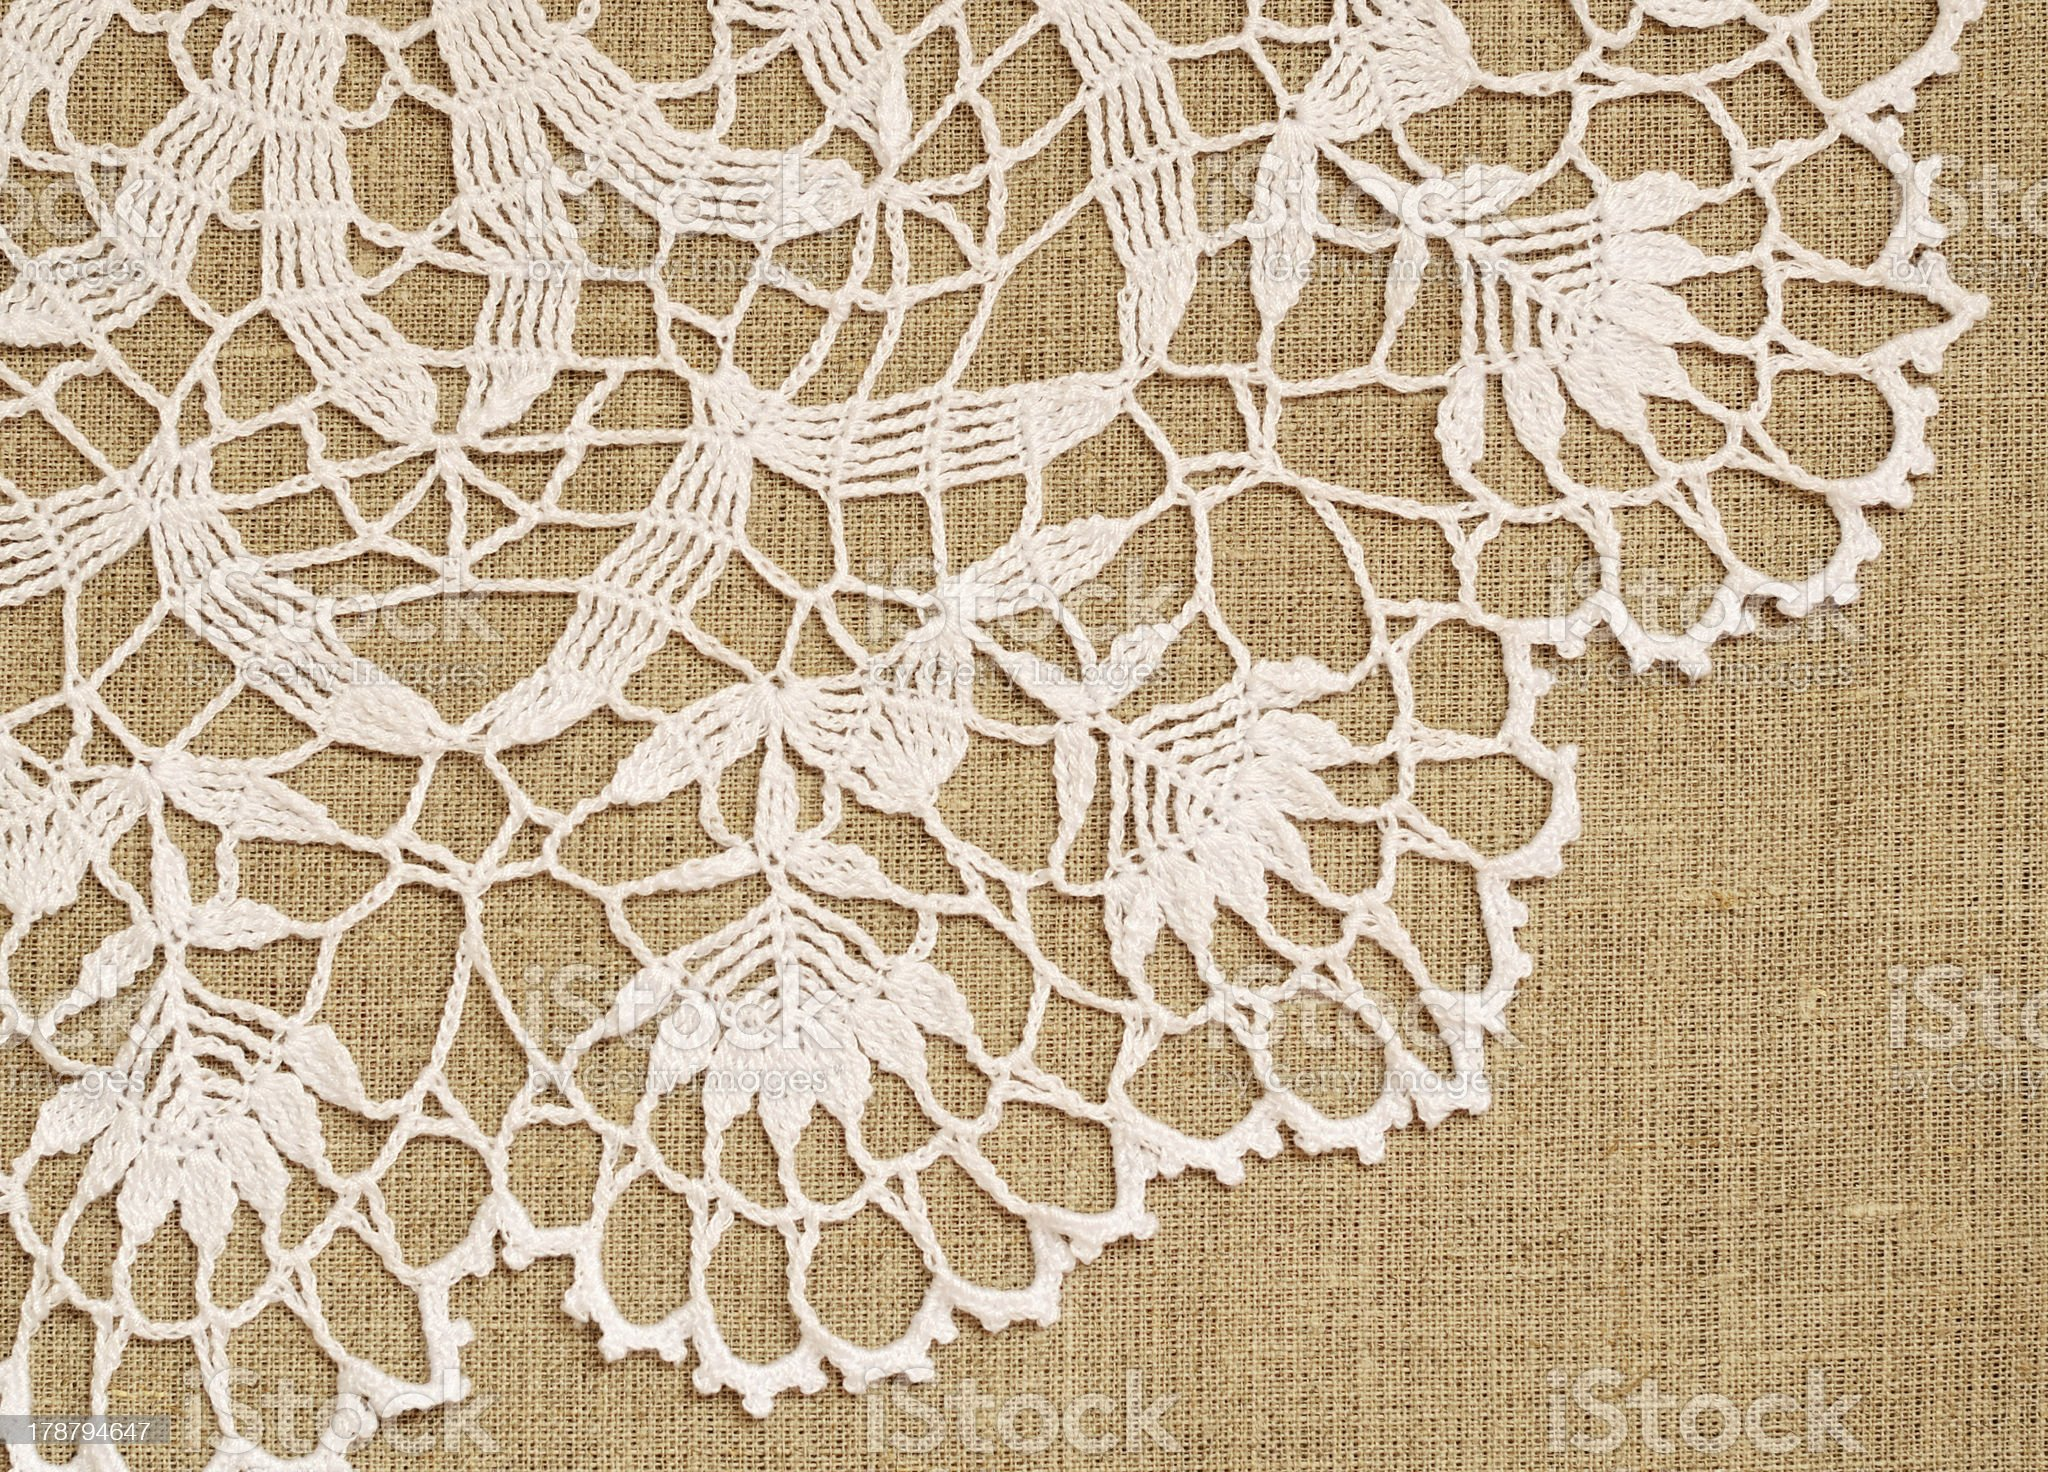 Lace on canvas royalty-free stock photo